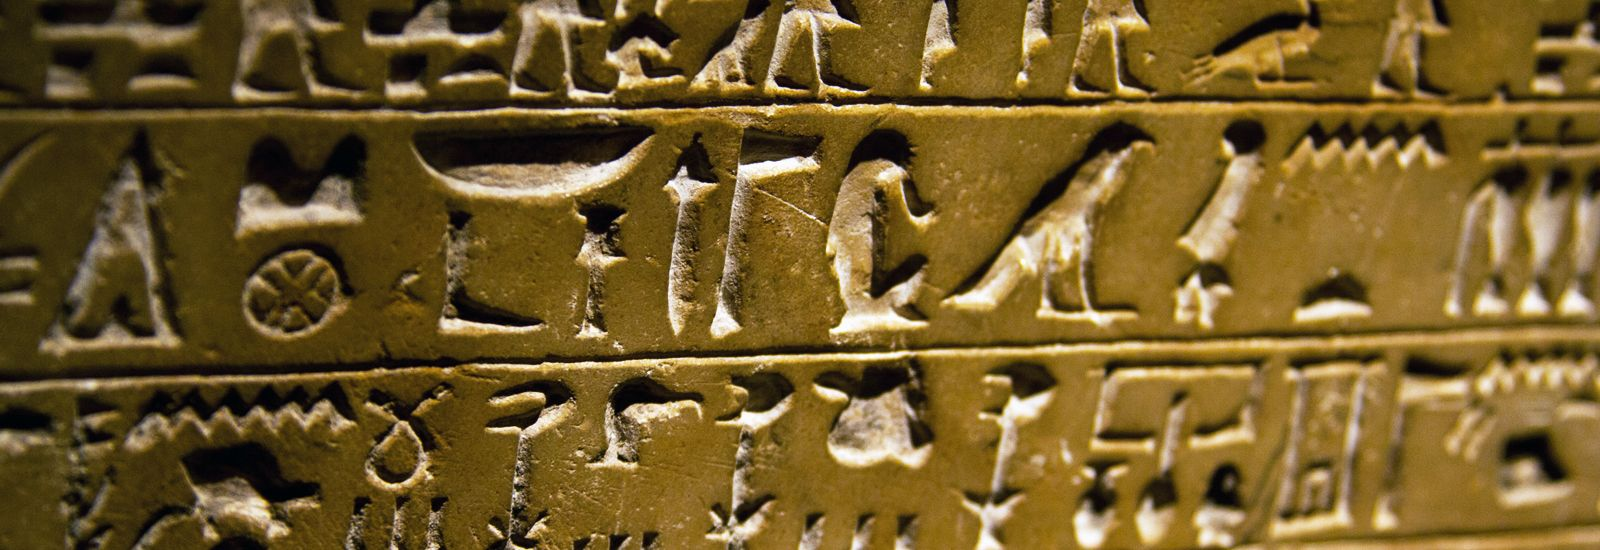 Hieroglyphs inscribed on a stone tablet